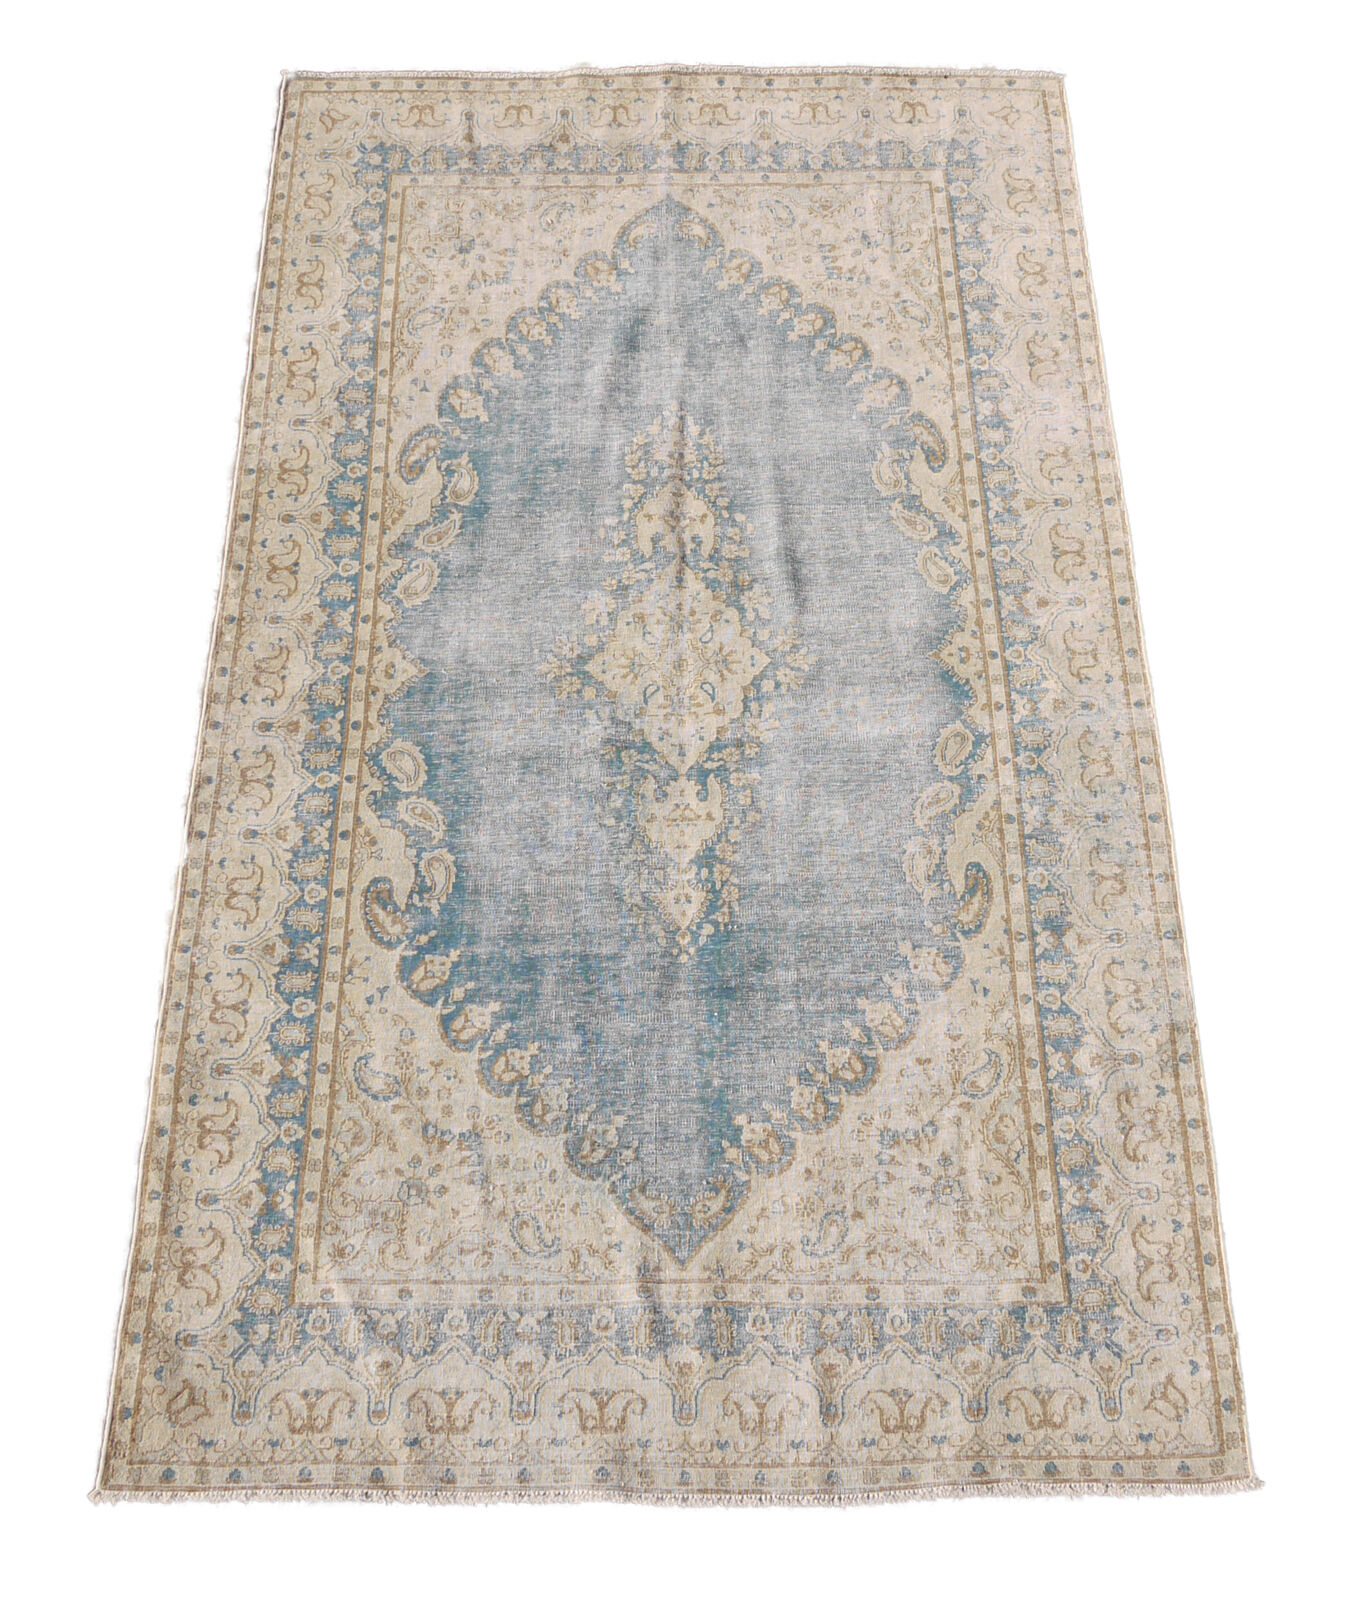 5x8 Washed out Antiqued Intentional Abrash Delicate Handmade Area Rug